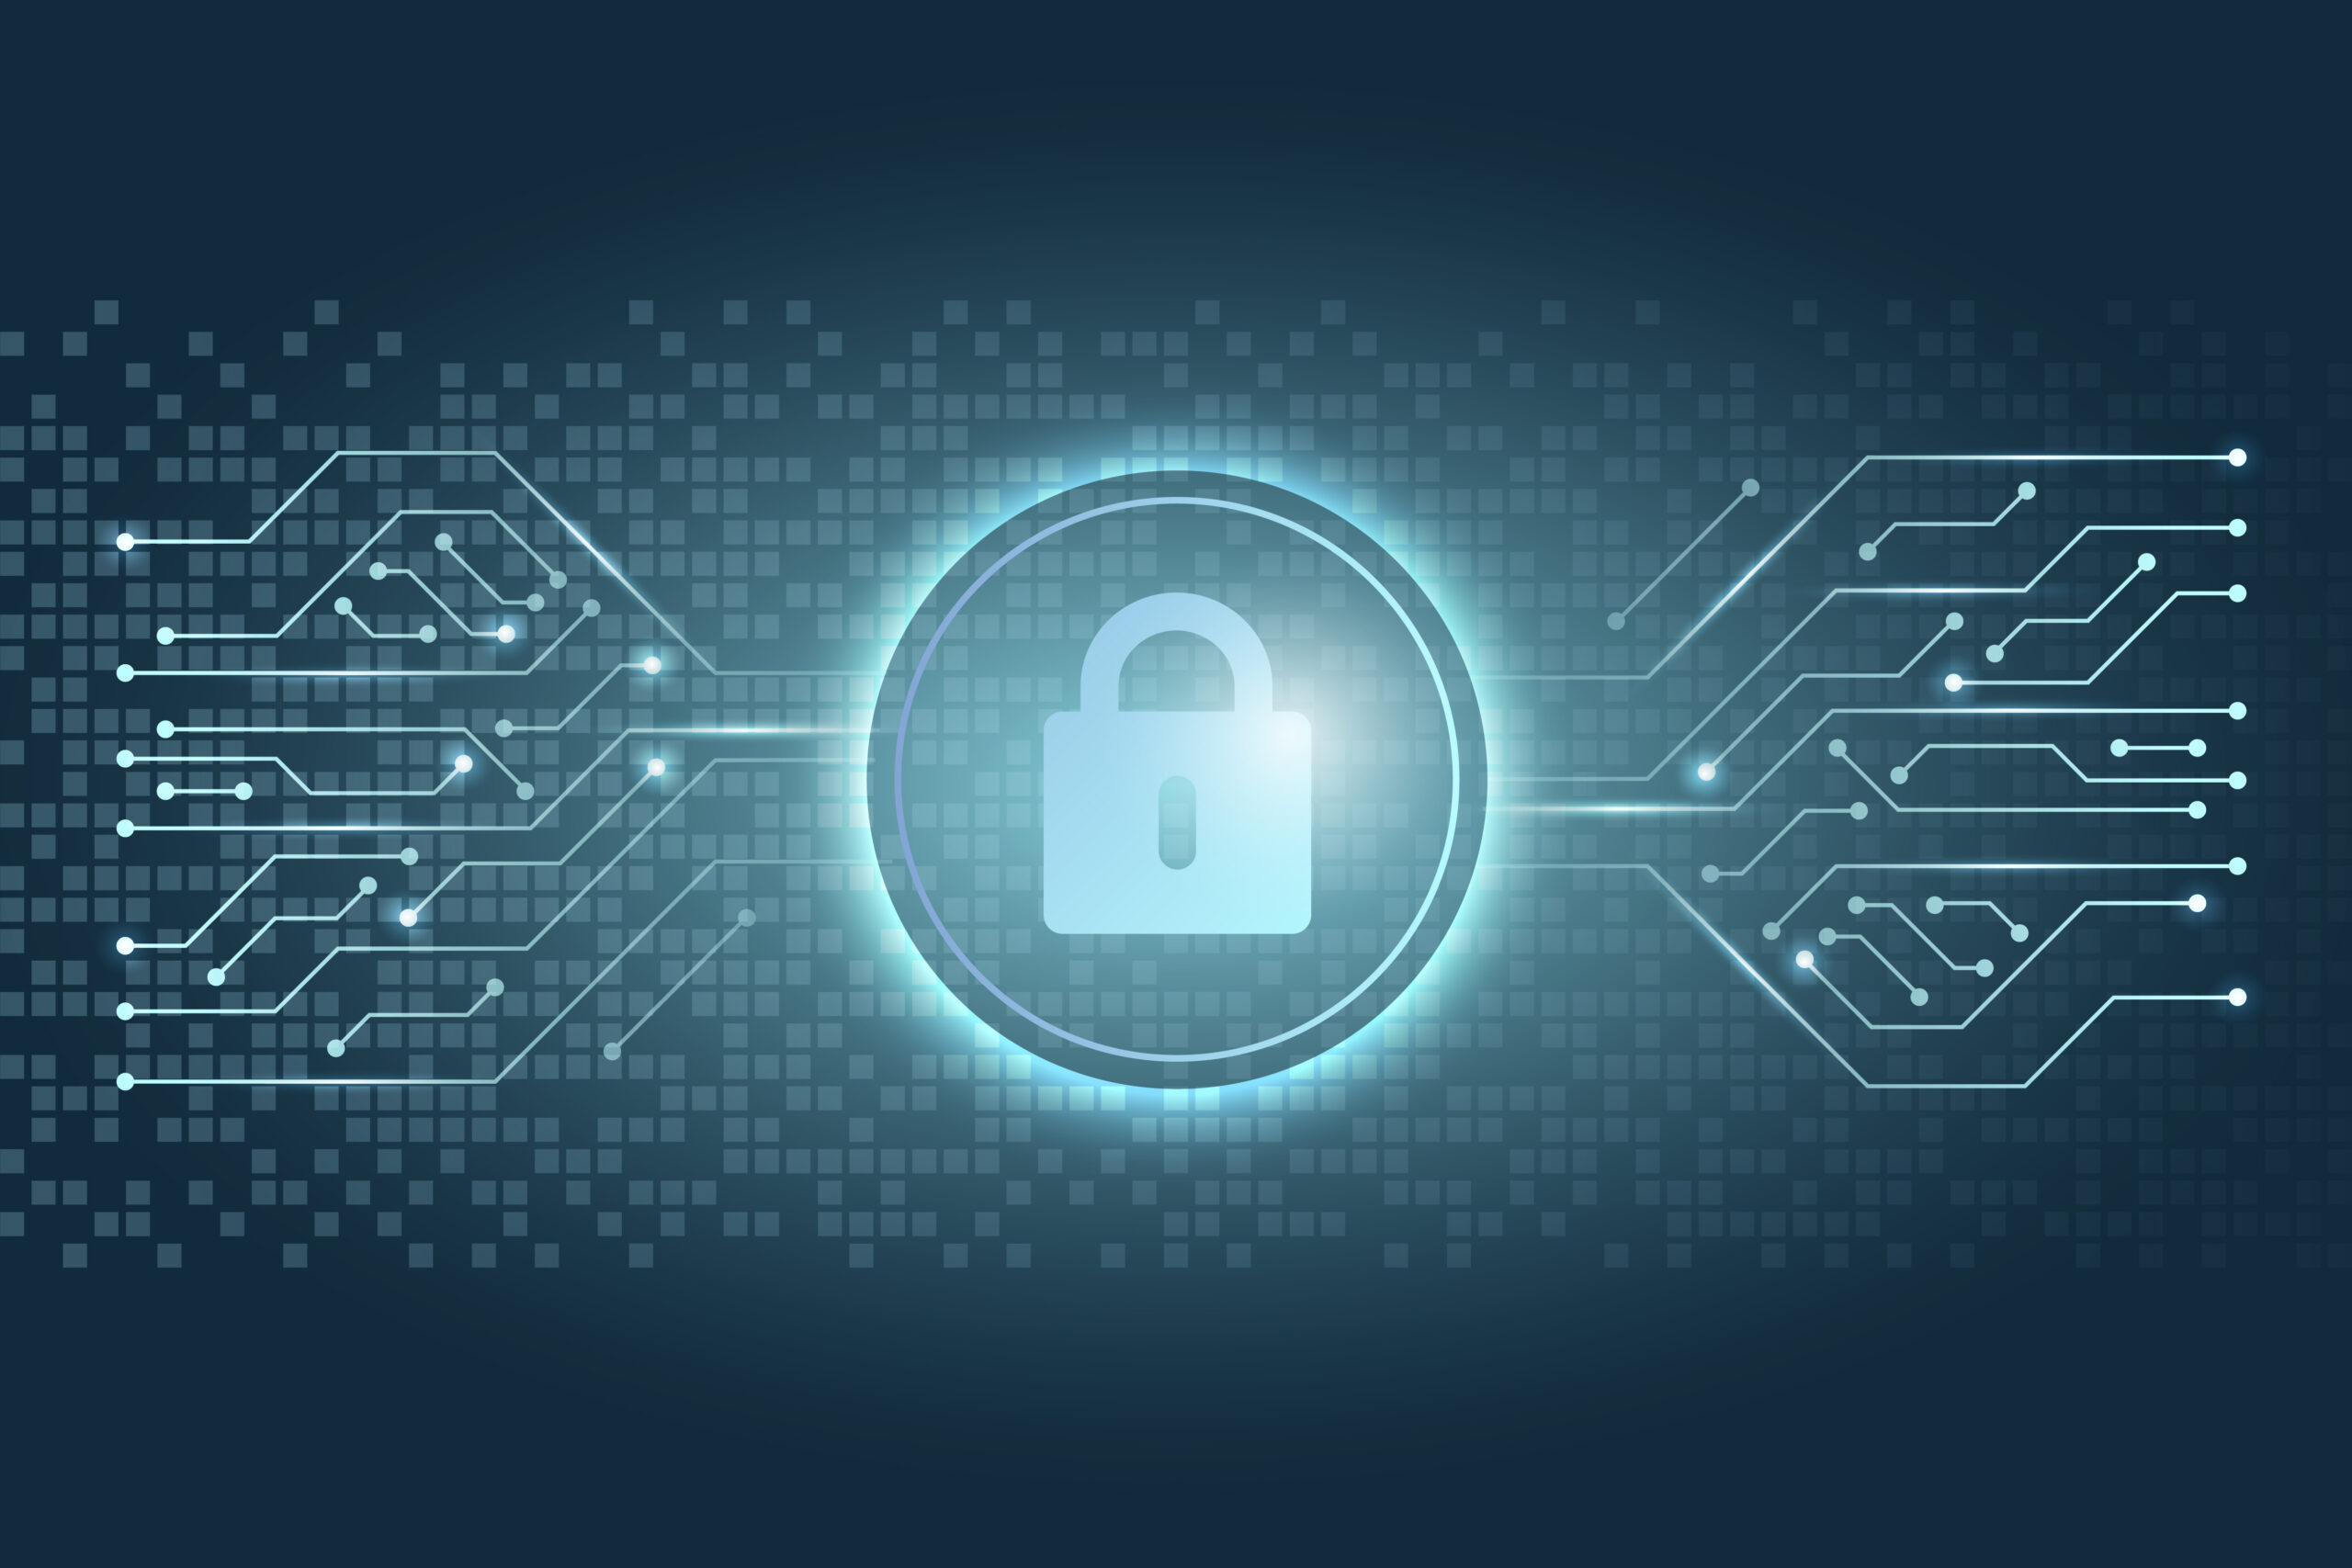 CyberSecurity Part 1: The EO, SBOMs, Threats, and Policies